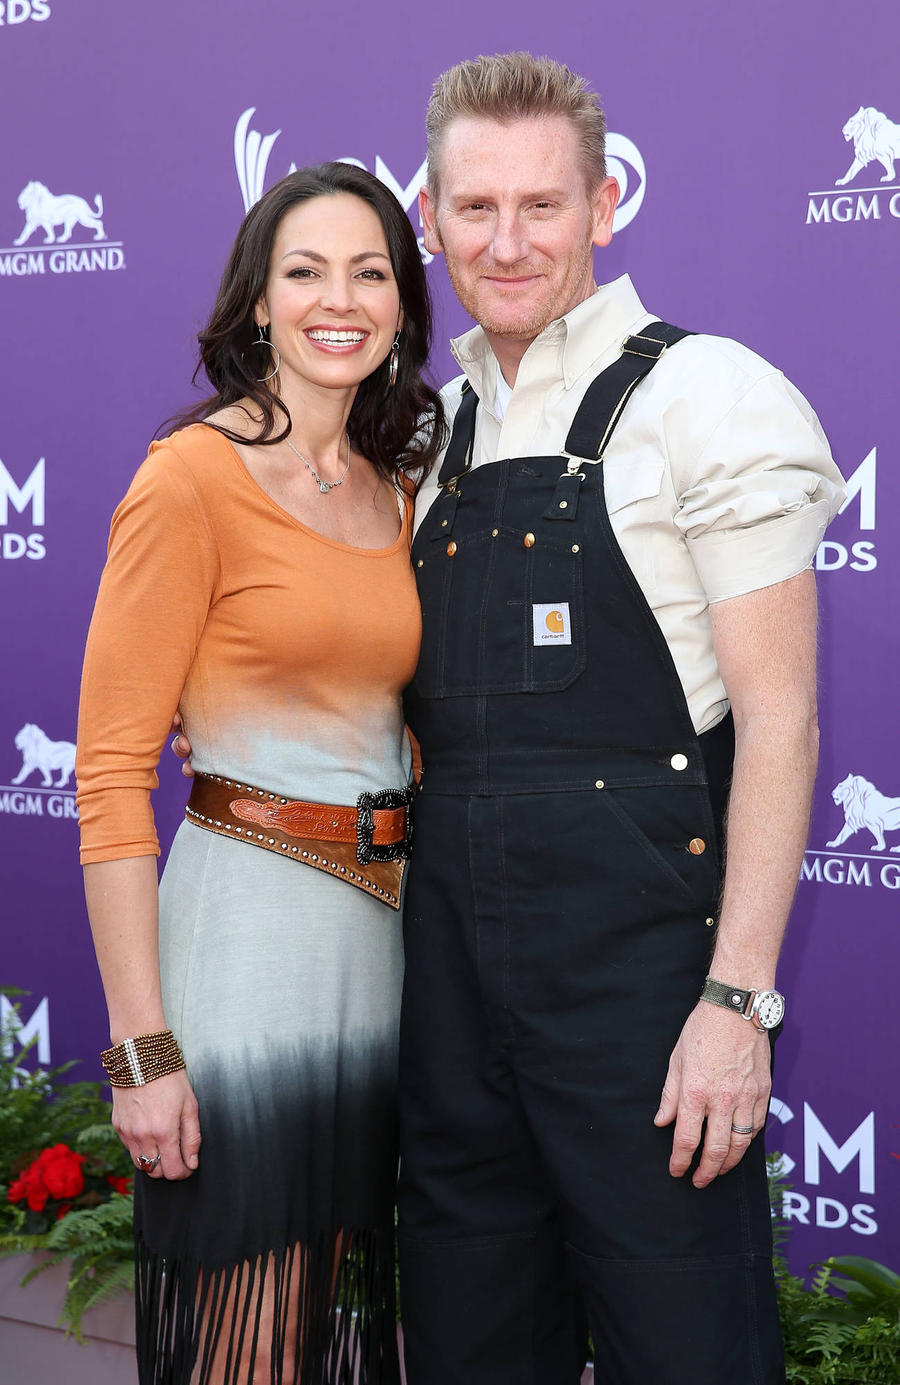 Rory Feek Hasn't Selected A Gravestone For His Late Wife Joey